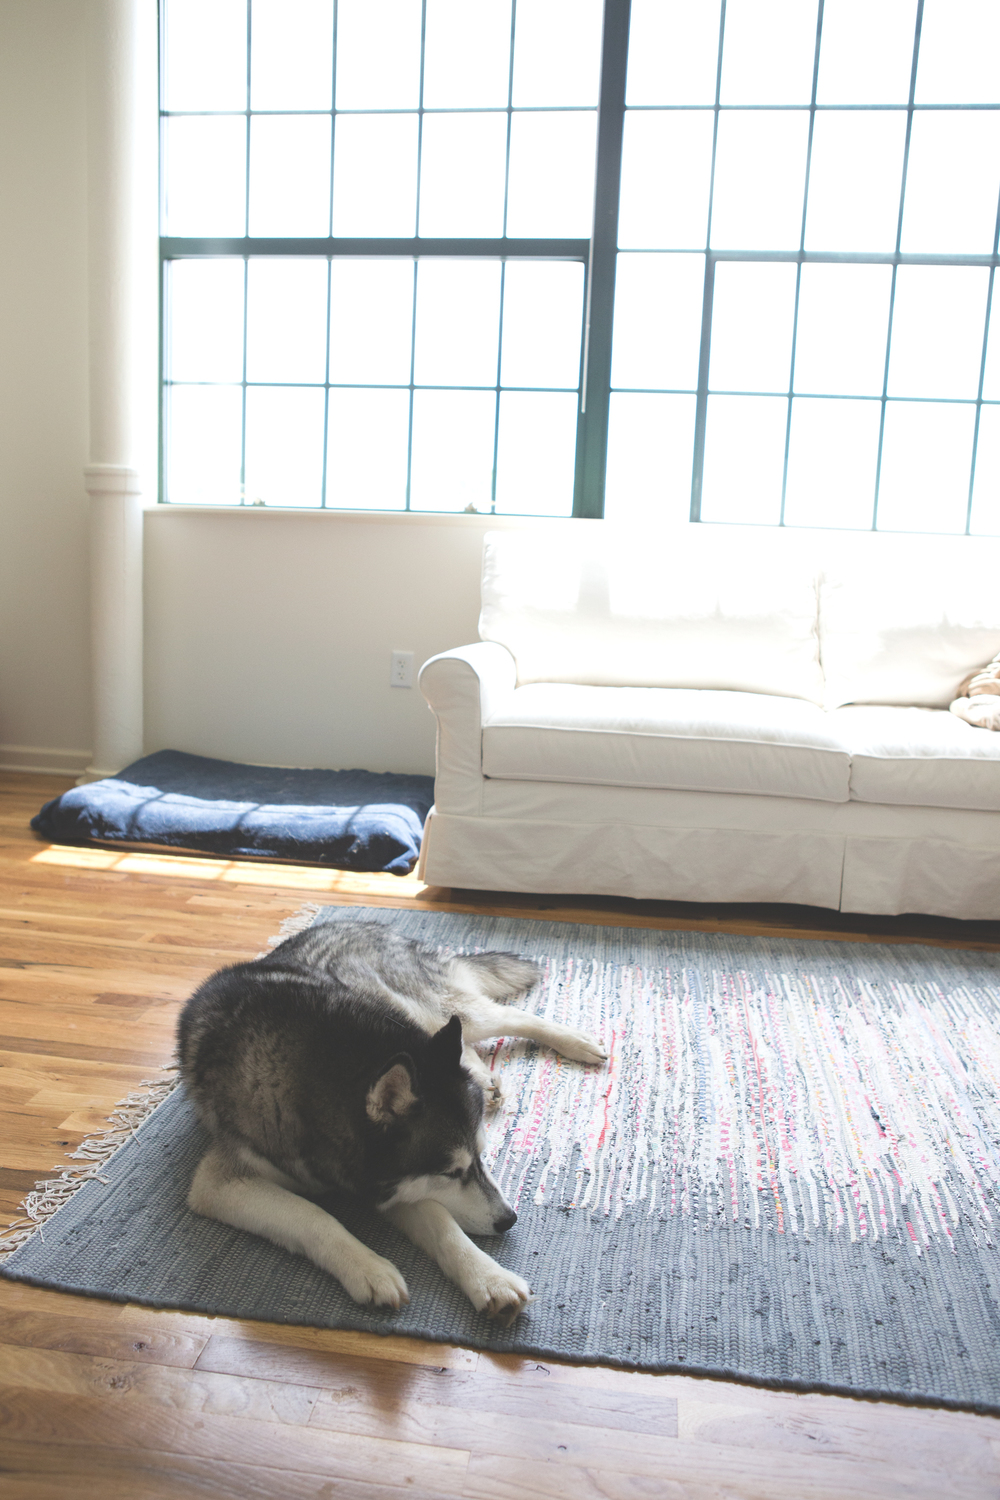 Home/office tour, part 2 couch, rug, homemade dog bed.